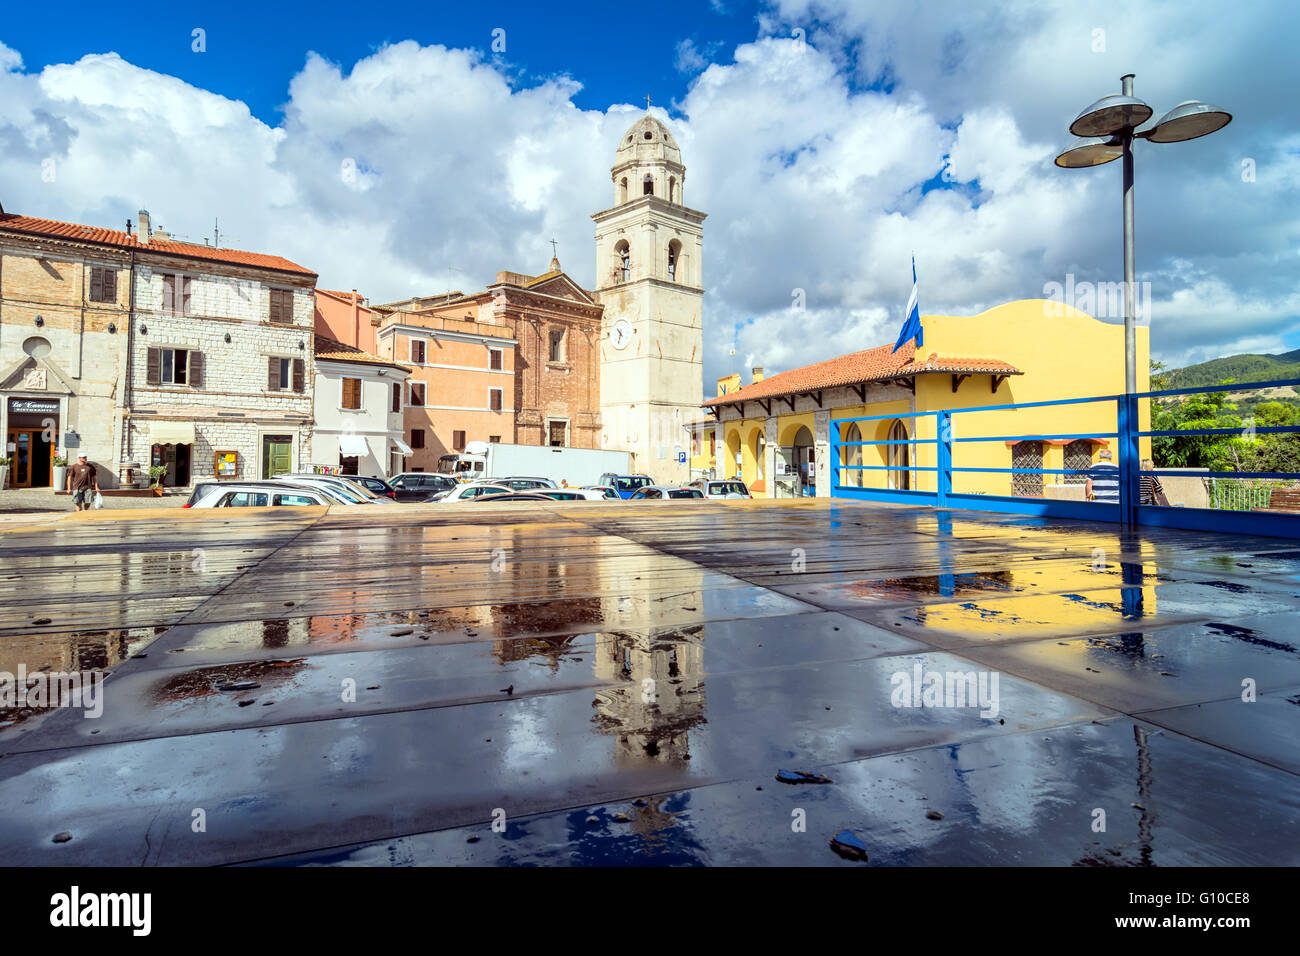 street view with tourists in Sirolo, Italy. - Stock Image